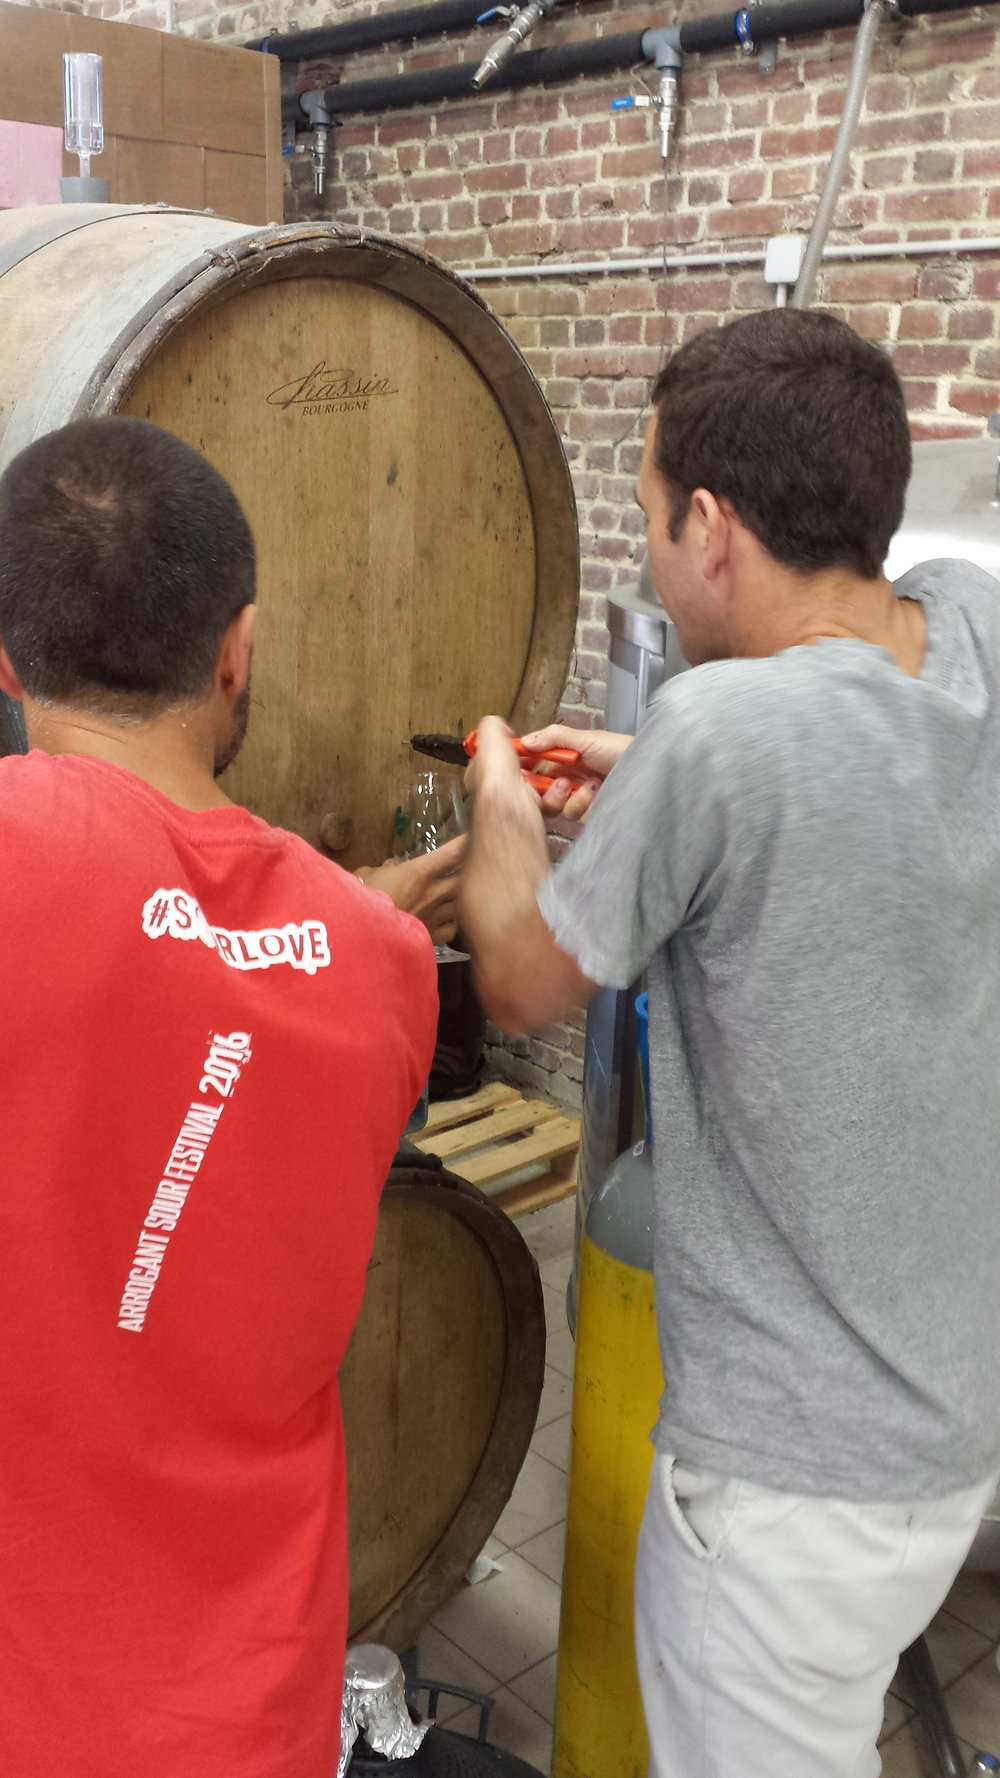 Pulling a sample from a cask infused with the same strain